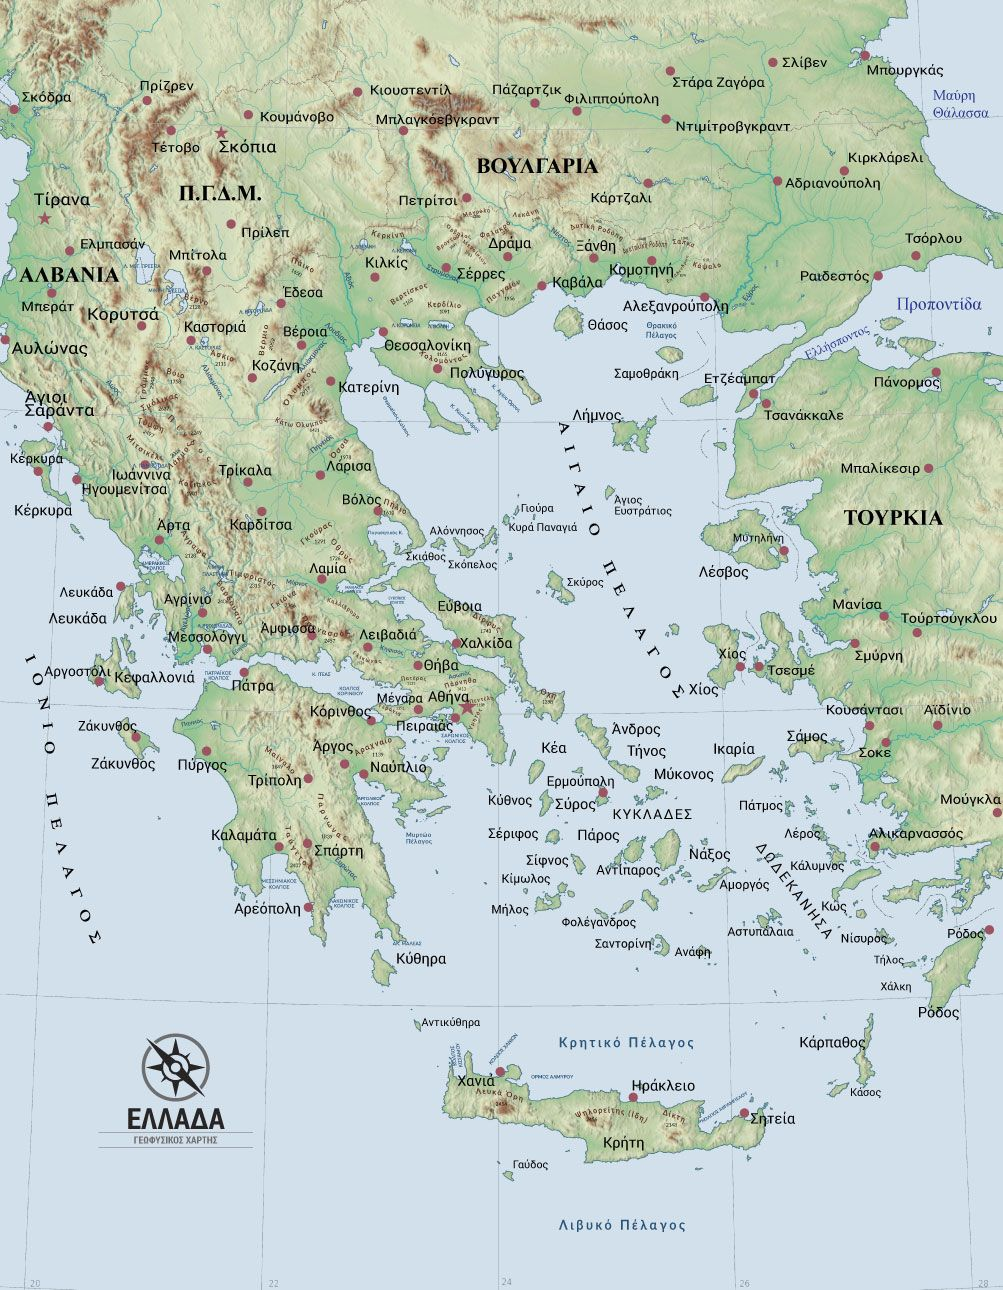 Xarths Elladas Gewfysikos Geo 217 Map World Map World